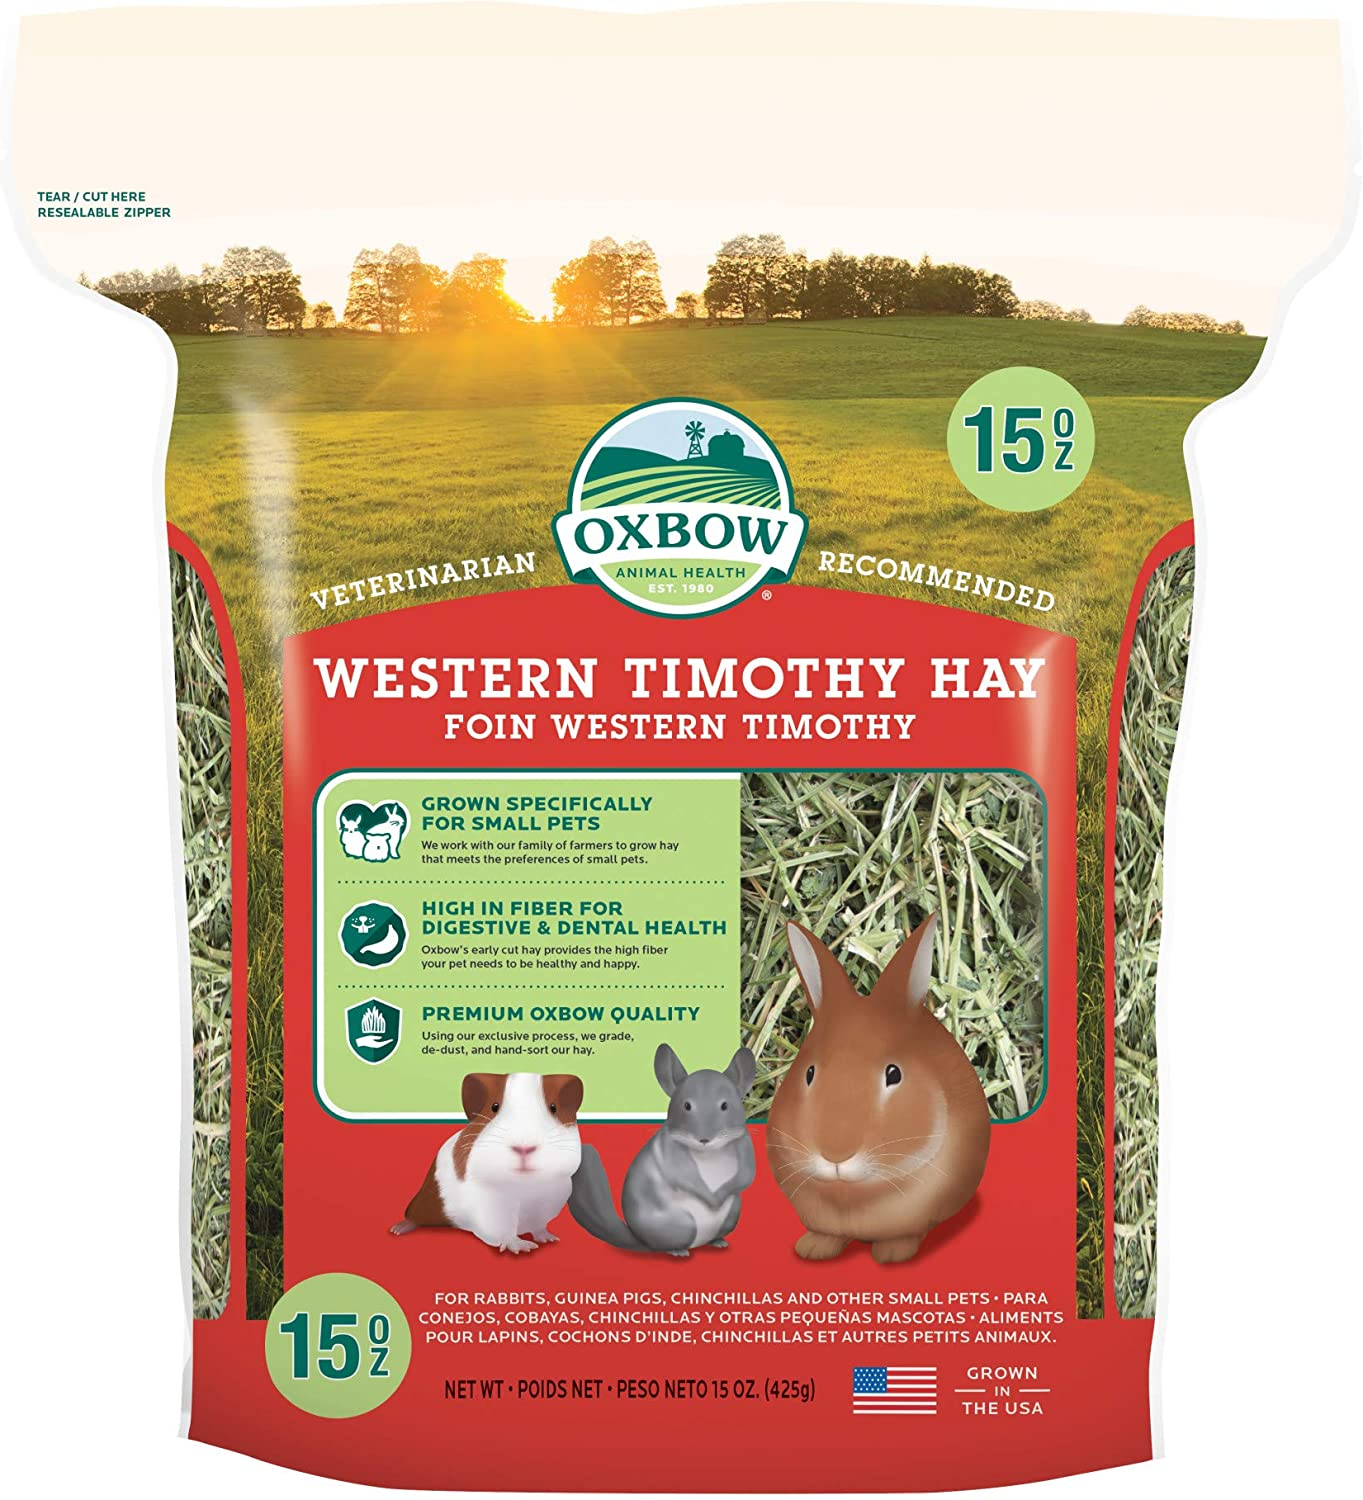 Oxbow Animal Health Western Timothy Hay - All Natural Hay for Rabbits, Guinea Pigs, Chinchillas, Hamsters & Gerbils